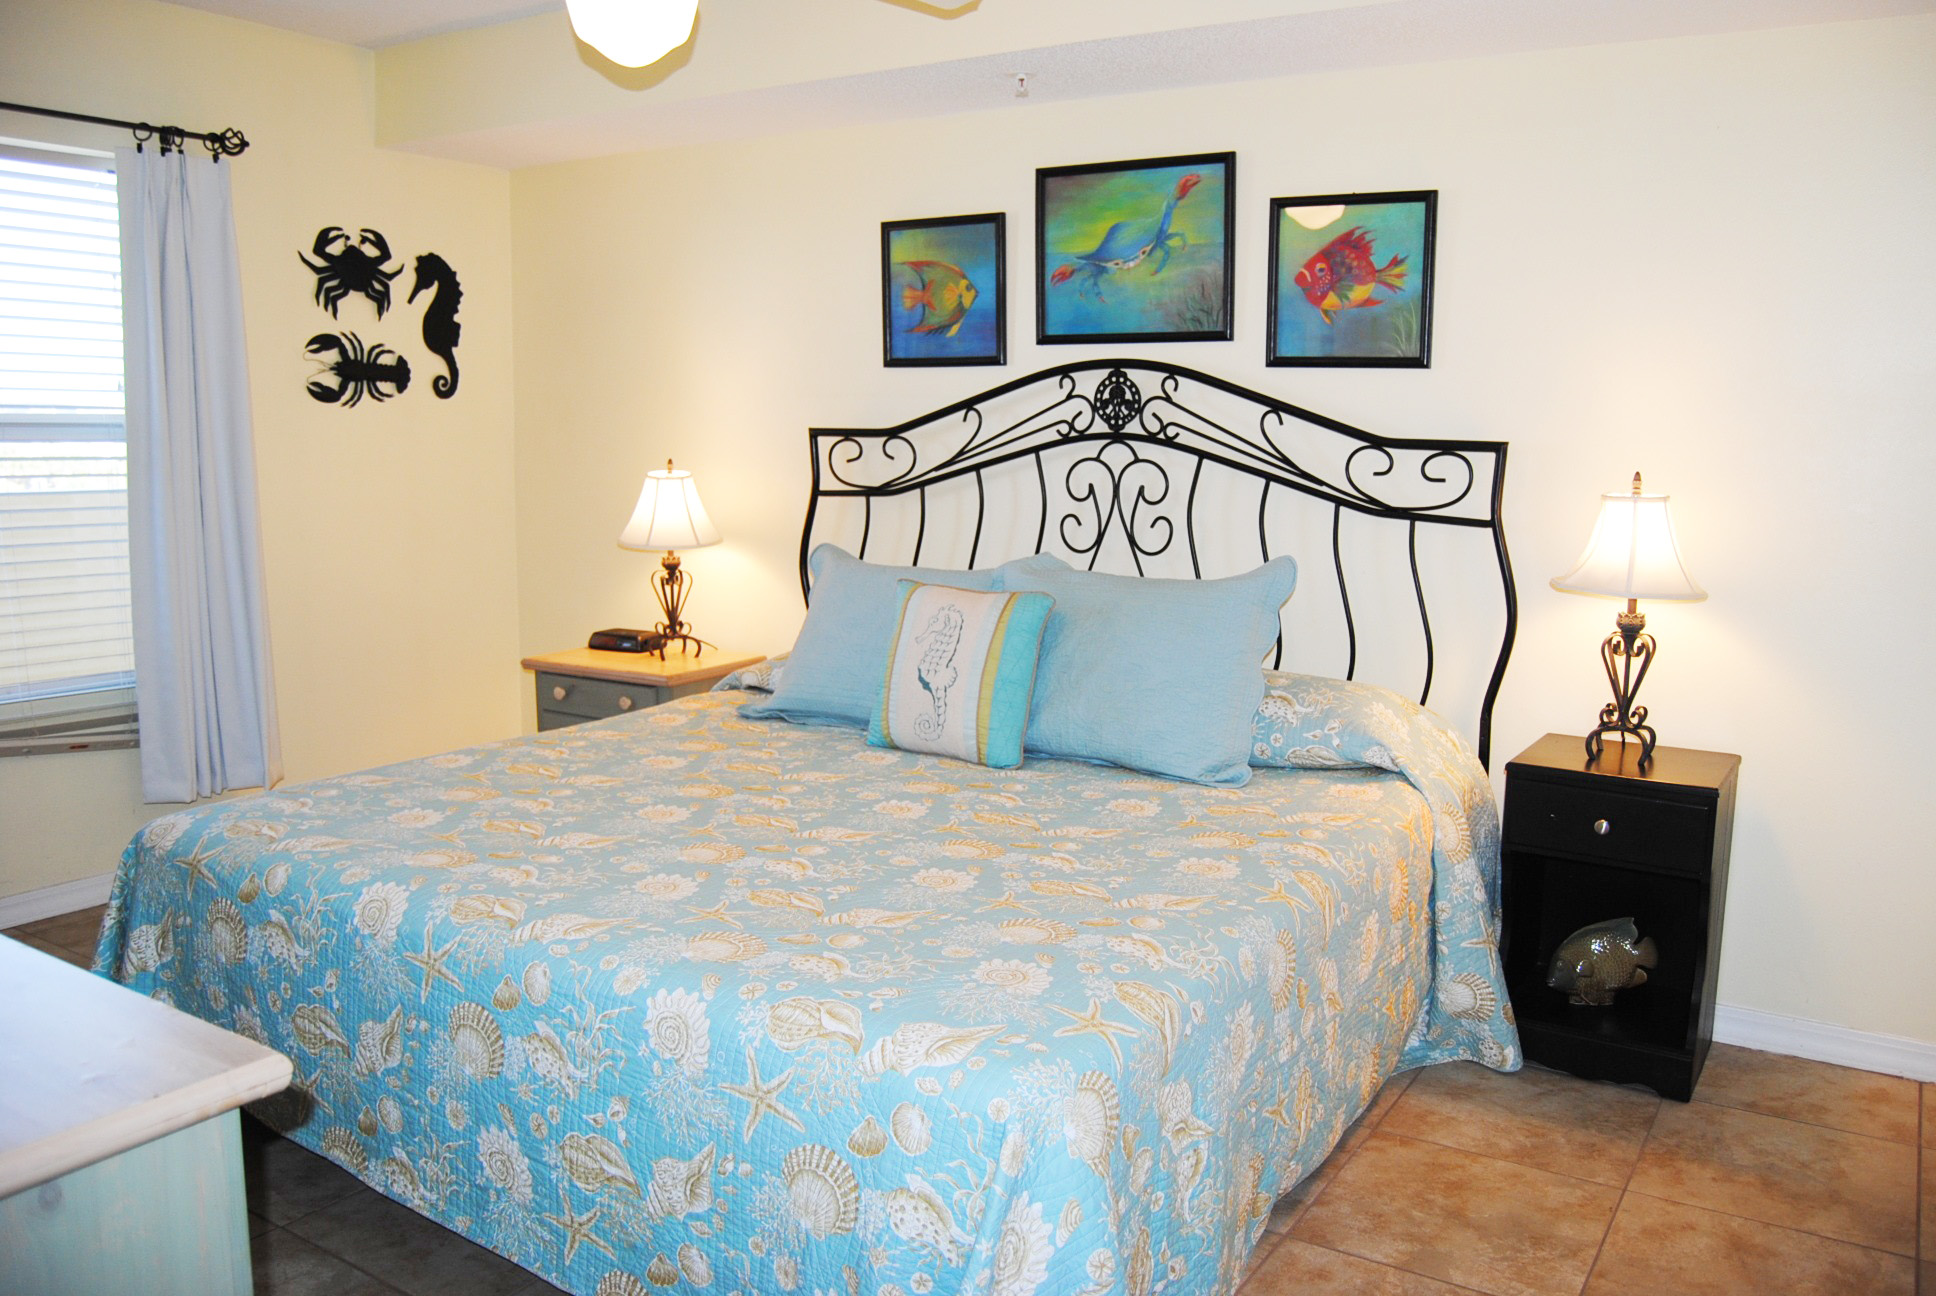 Guest Bedroom with King Bed - Gulf Dunes 304 Fort Walton Beach Florida Okaloosa Island Vacation Rentals